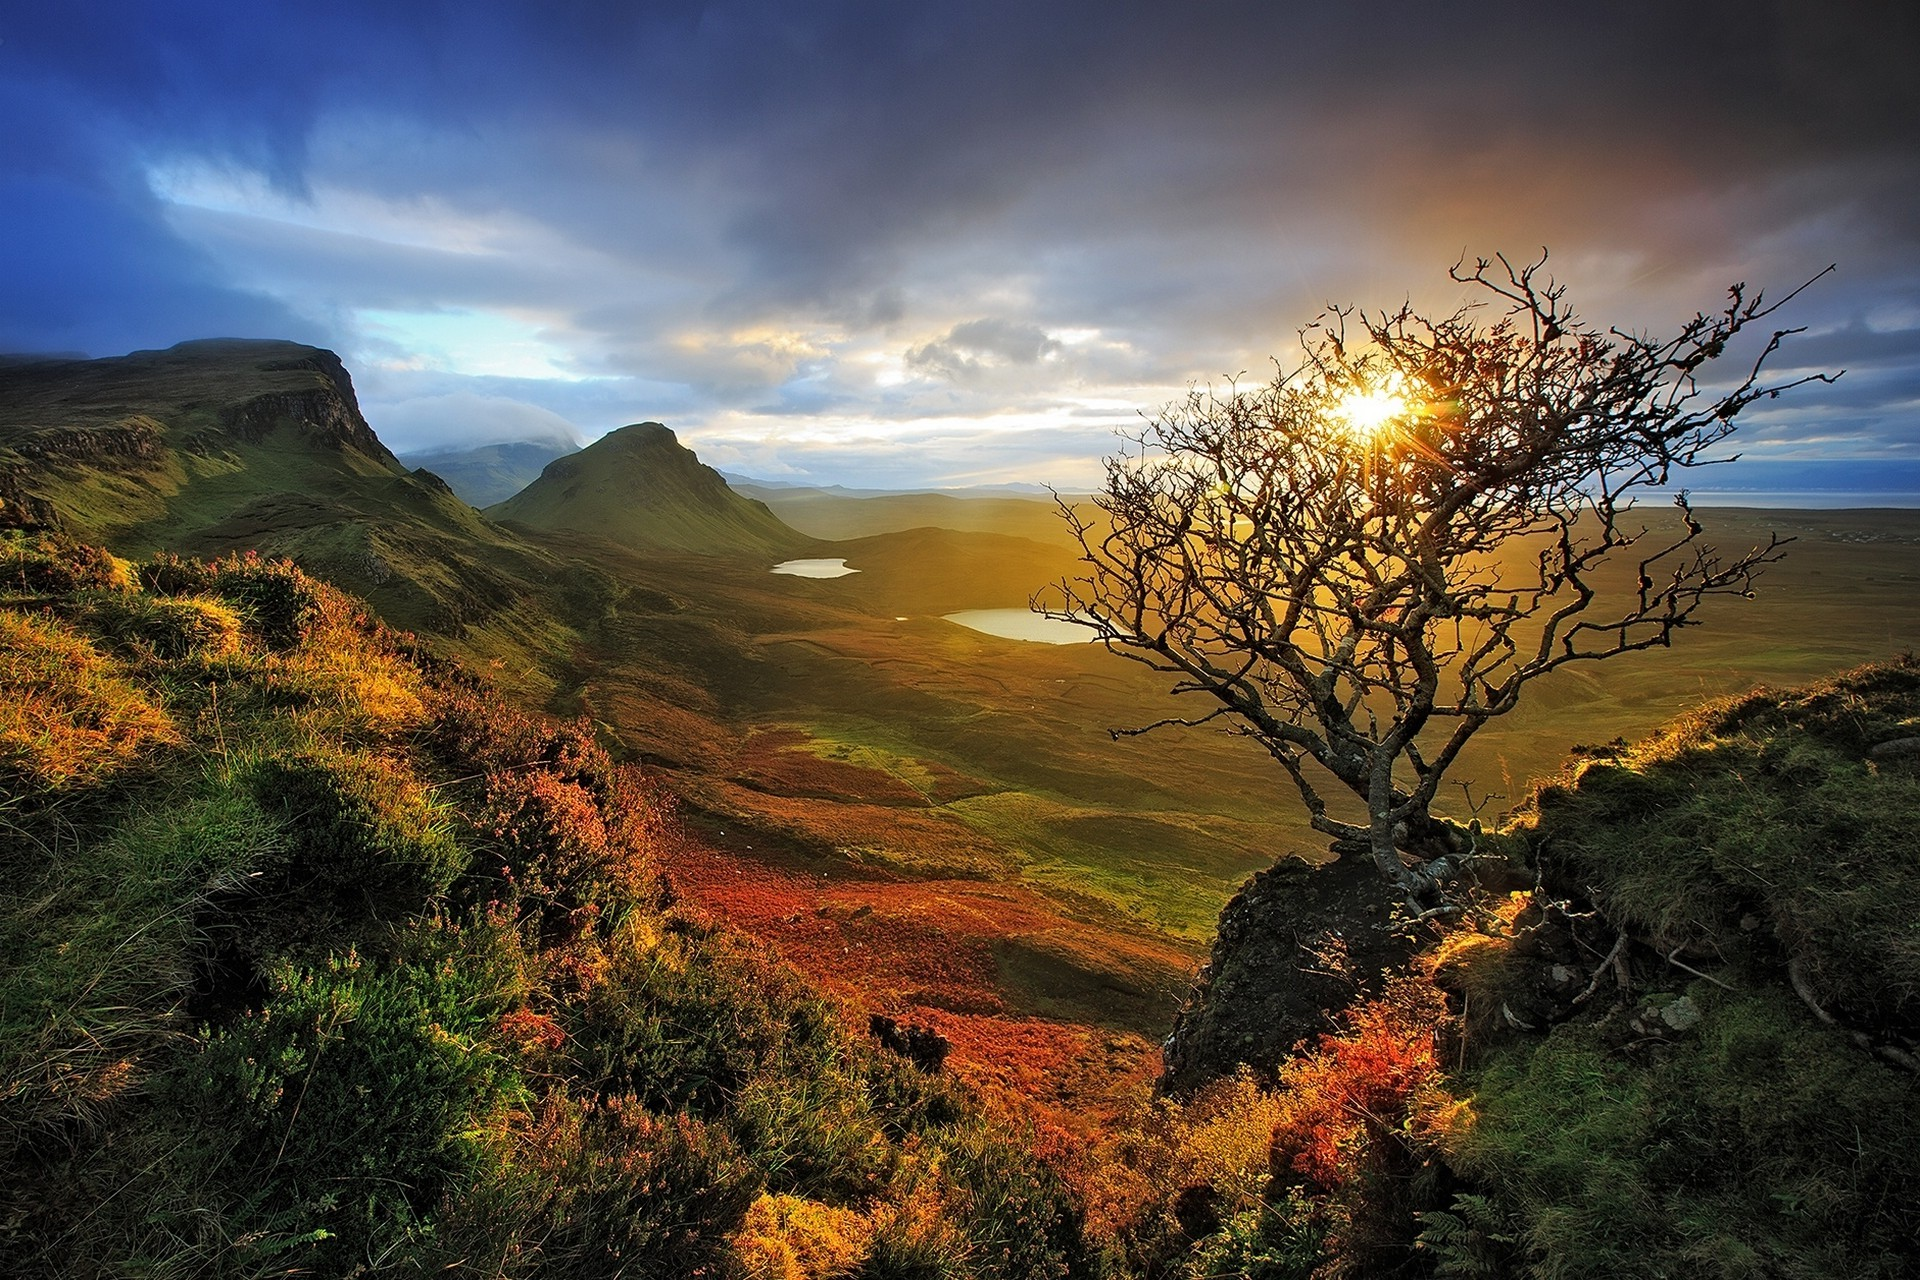 Fall Wallpaper 1600x900 Nature Landscape Skye Scotland Sunrise Dead Trees